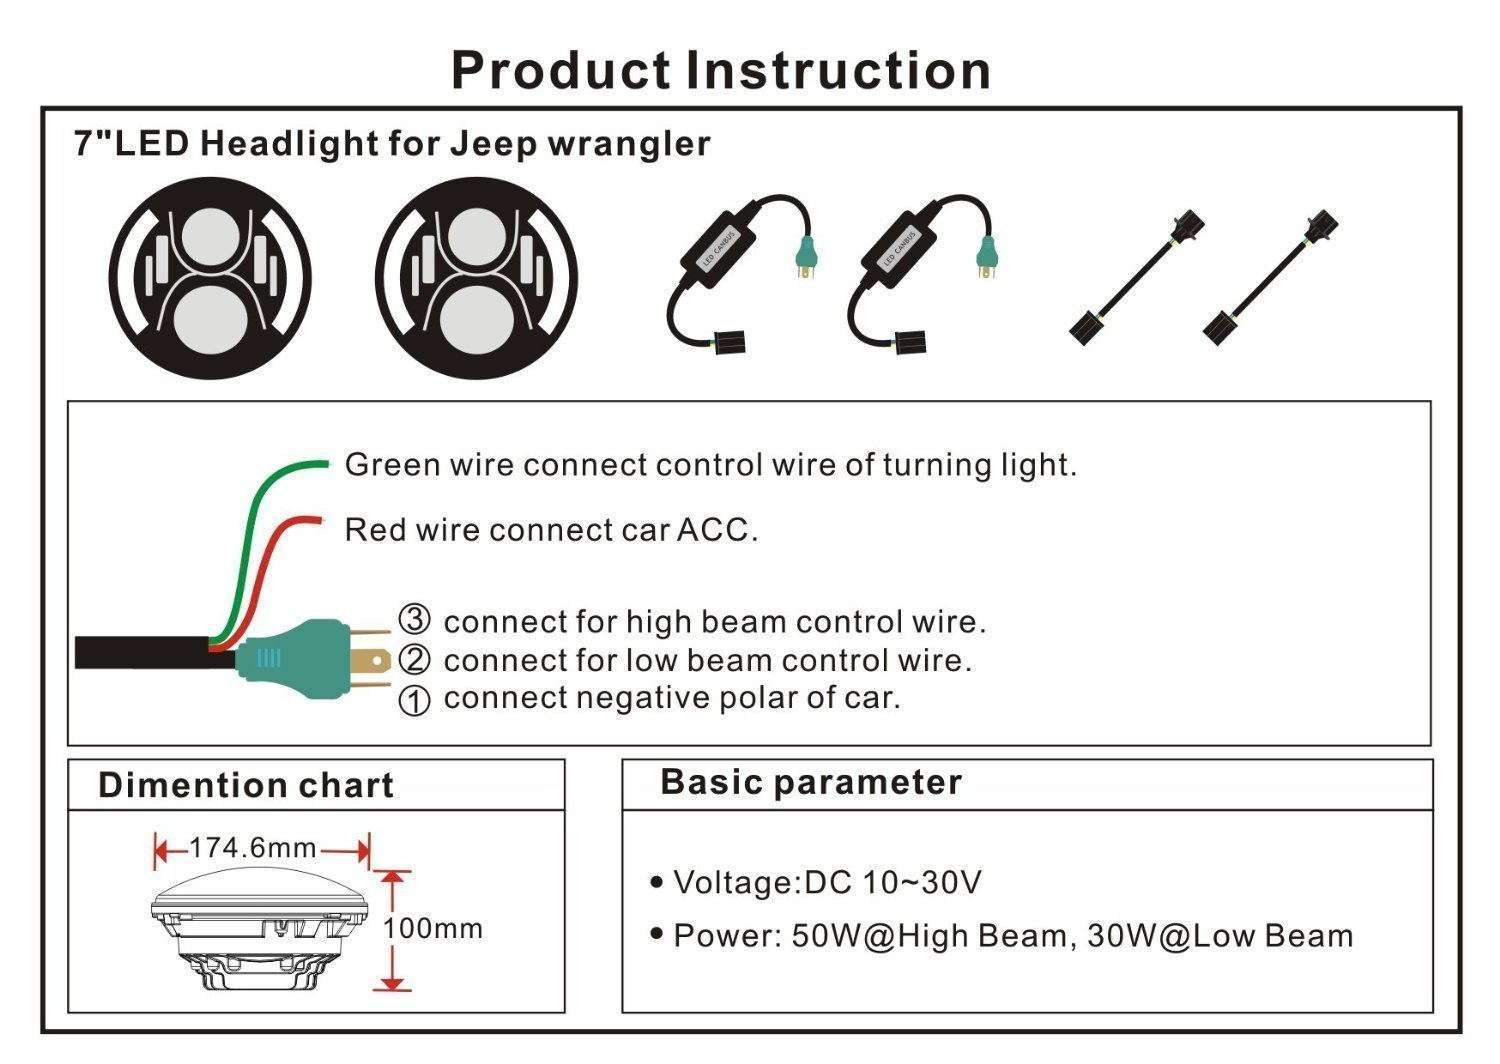 Wiring Instructions For Kc Lights